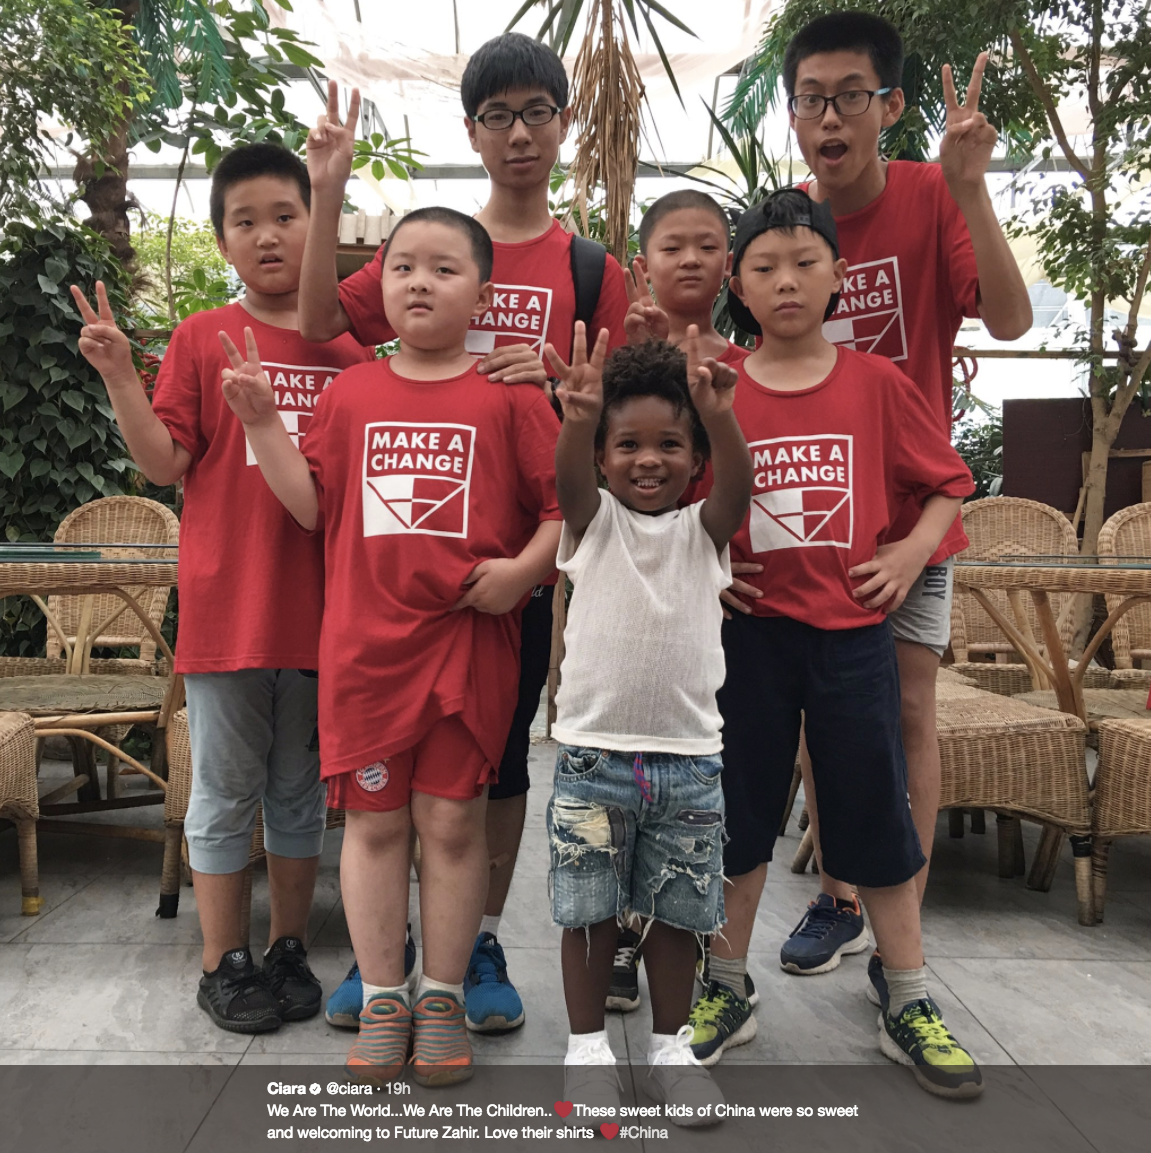 """We Are The World...We Are The Children..These sweet kids of China were so sweet and welcoming to Future Zahir. Love their shirts #China""                      The entire Wilson family has been traveling around China on vacation before training camp starts back in Seattle next week! Ciara, Russell, Sienna and Future spent time at Disneyland Shanghai, the Great Wall, shopping in local markets, and doing multiple photoshoots (they are the Wilsons, after all)! Russell was there in part as a rep for Nike, and spent time at their Shanghai campus doing drills with local children (and Future Jr.!) and ""bringing football to China"".  (Image: @ciara / twitter.com/ciara)"